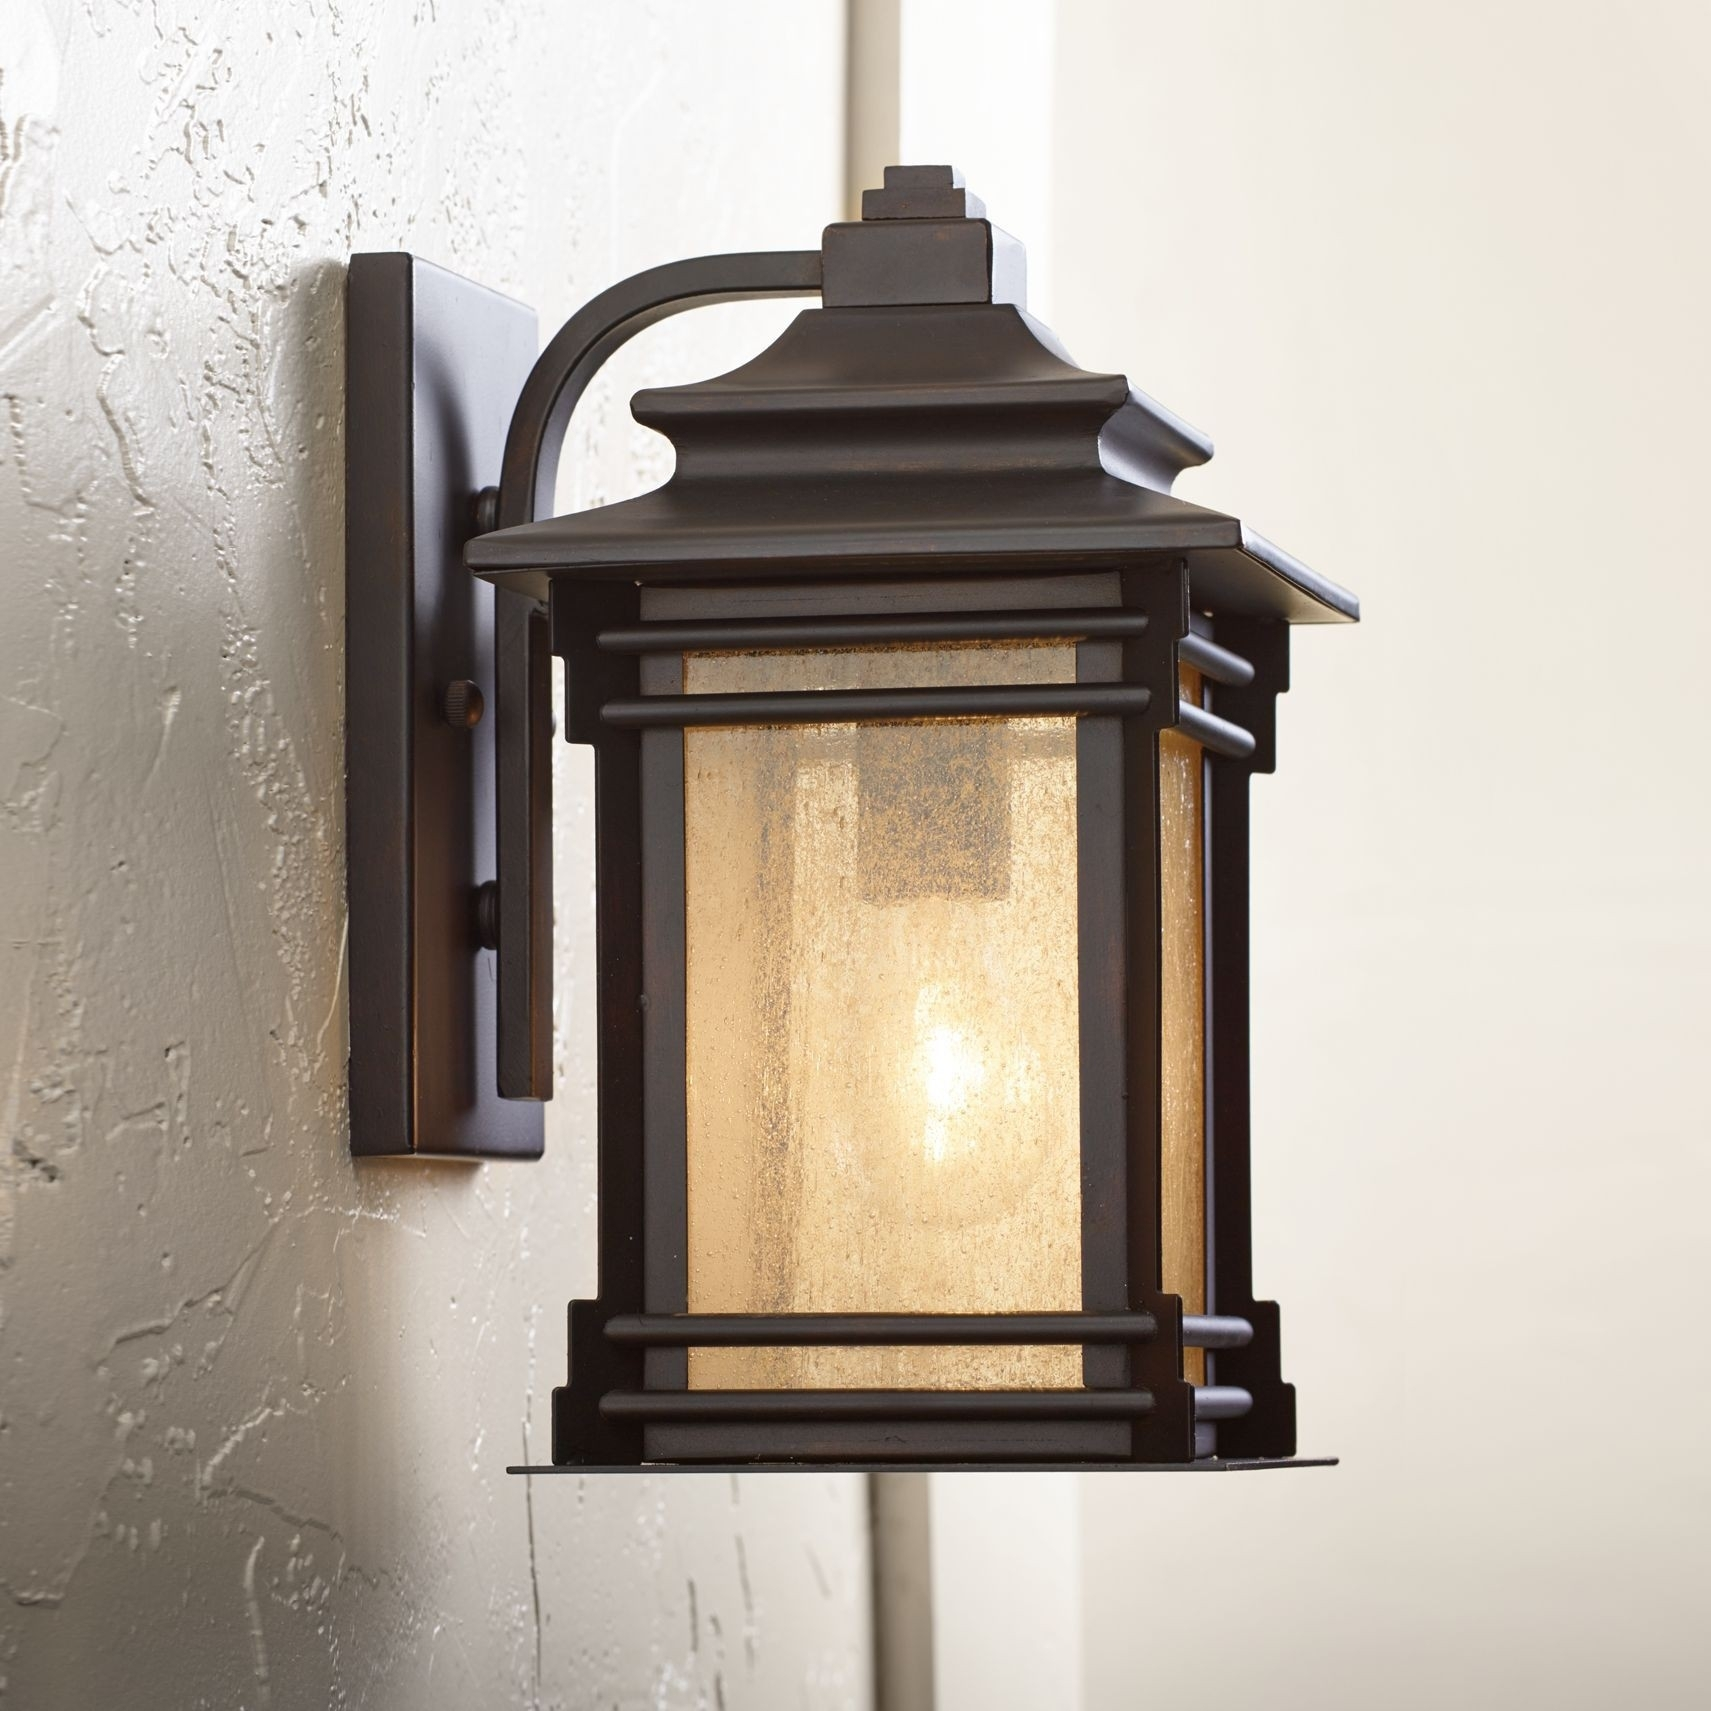 Elegant Lowes Outdoor Wall Lights (40 Photos) | Jlncreation With Regard To Elegant Outdoor Wall Lighting (View 12 of 15)